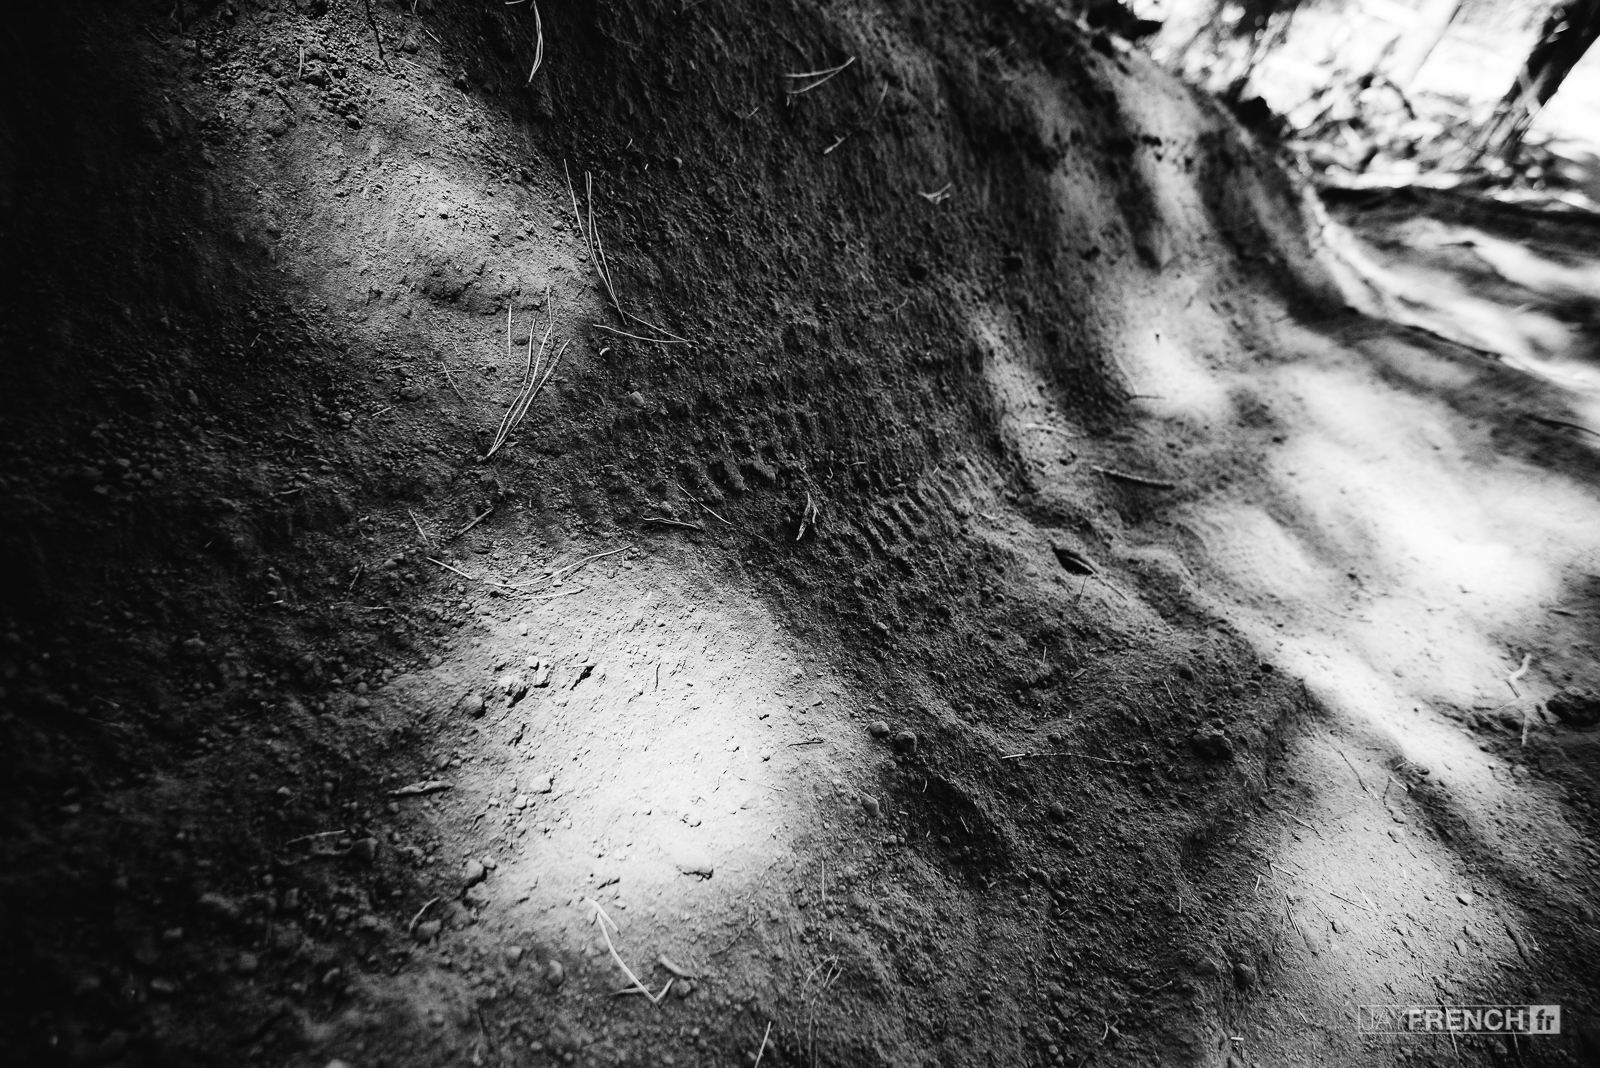 Some rare tracks in the dust